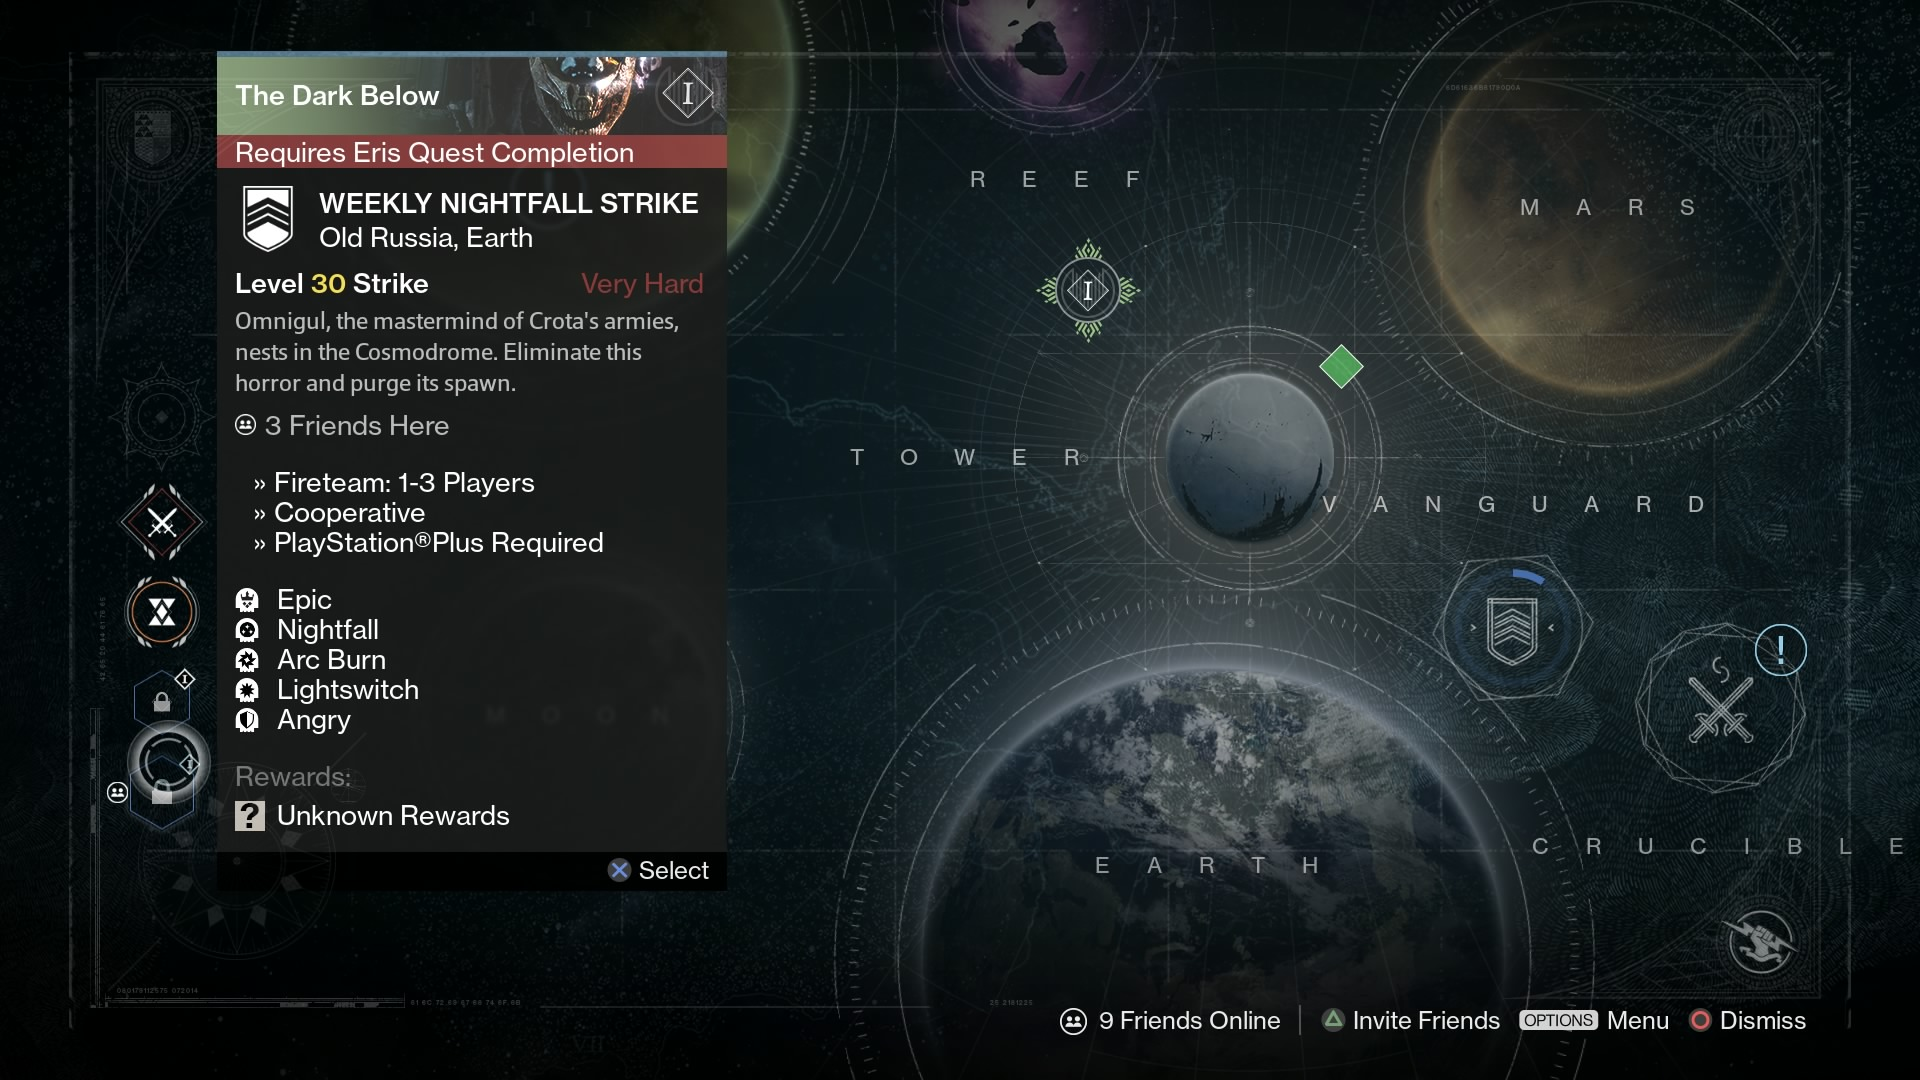 When the Dark Below DLC launched, it locked out all non-DLC players from participating in Weekly Nightfall or Heroic Strikes, denying access to a big portion of the game's endgame content.